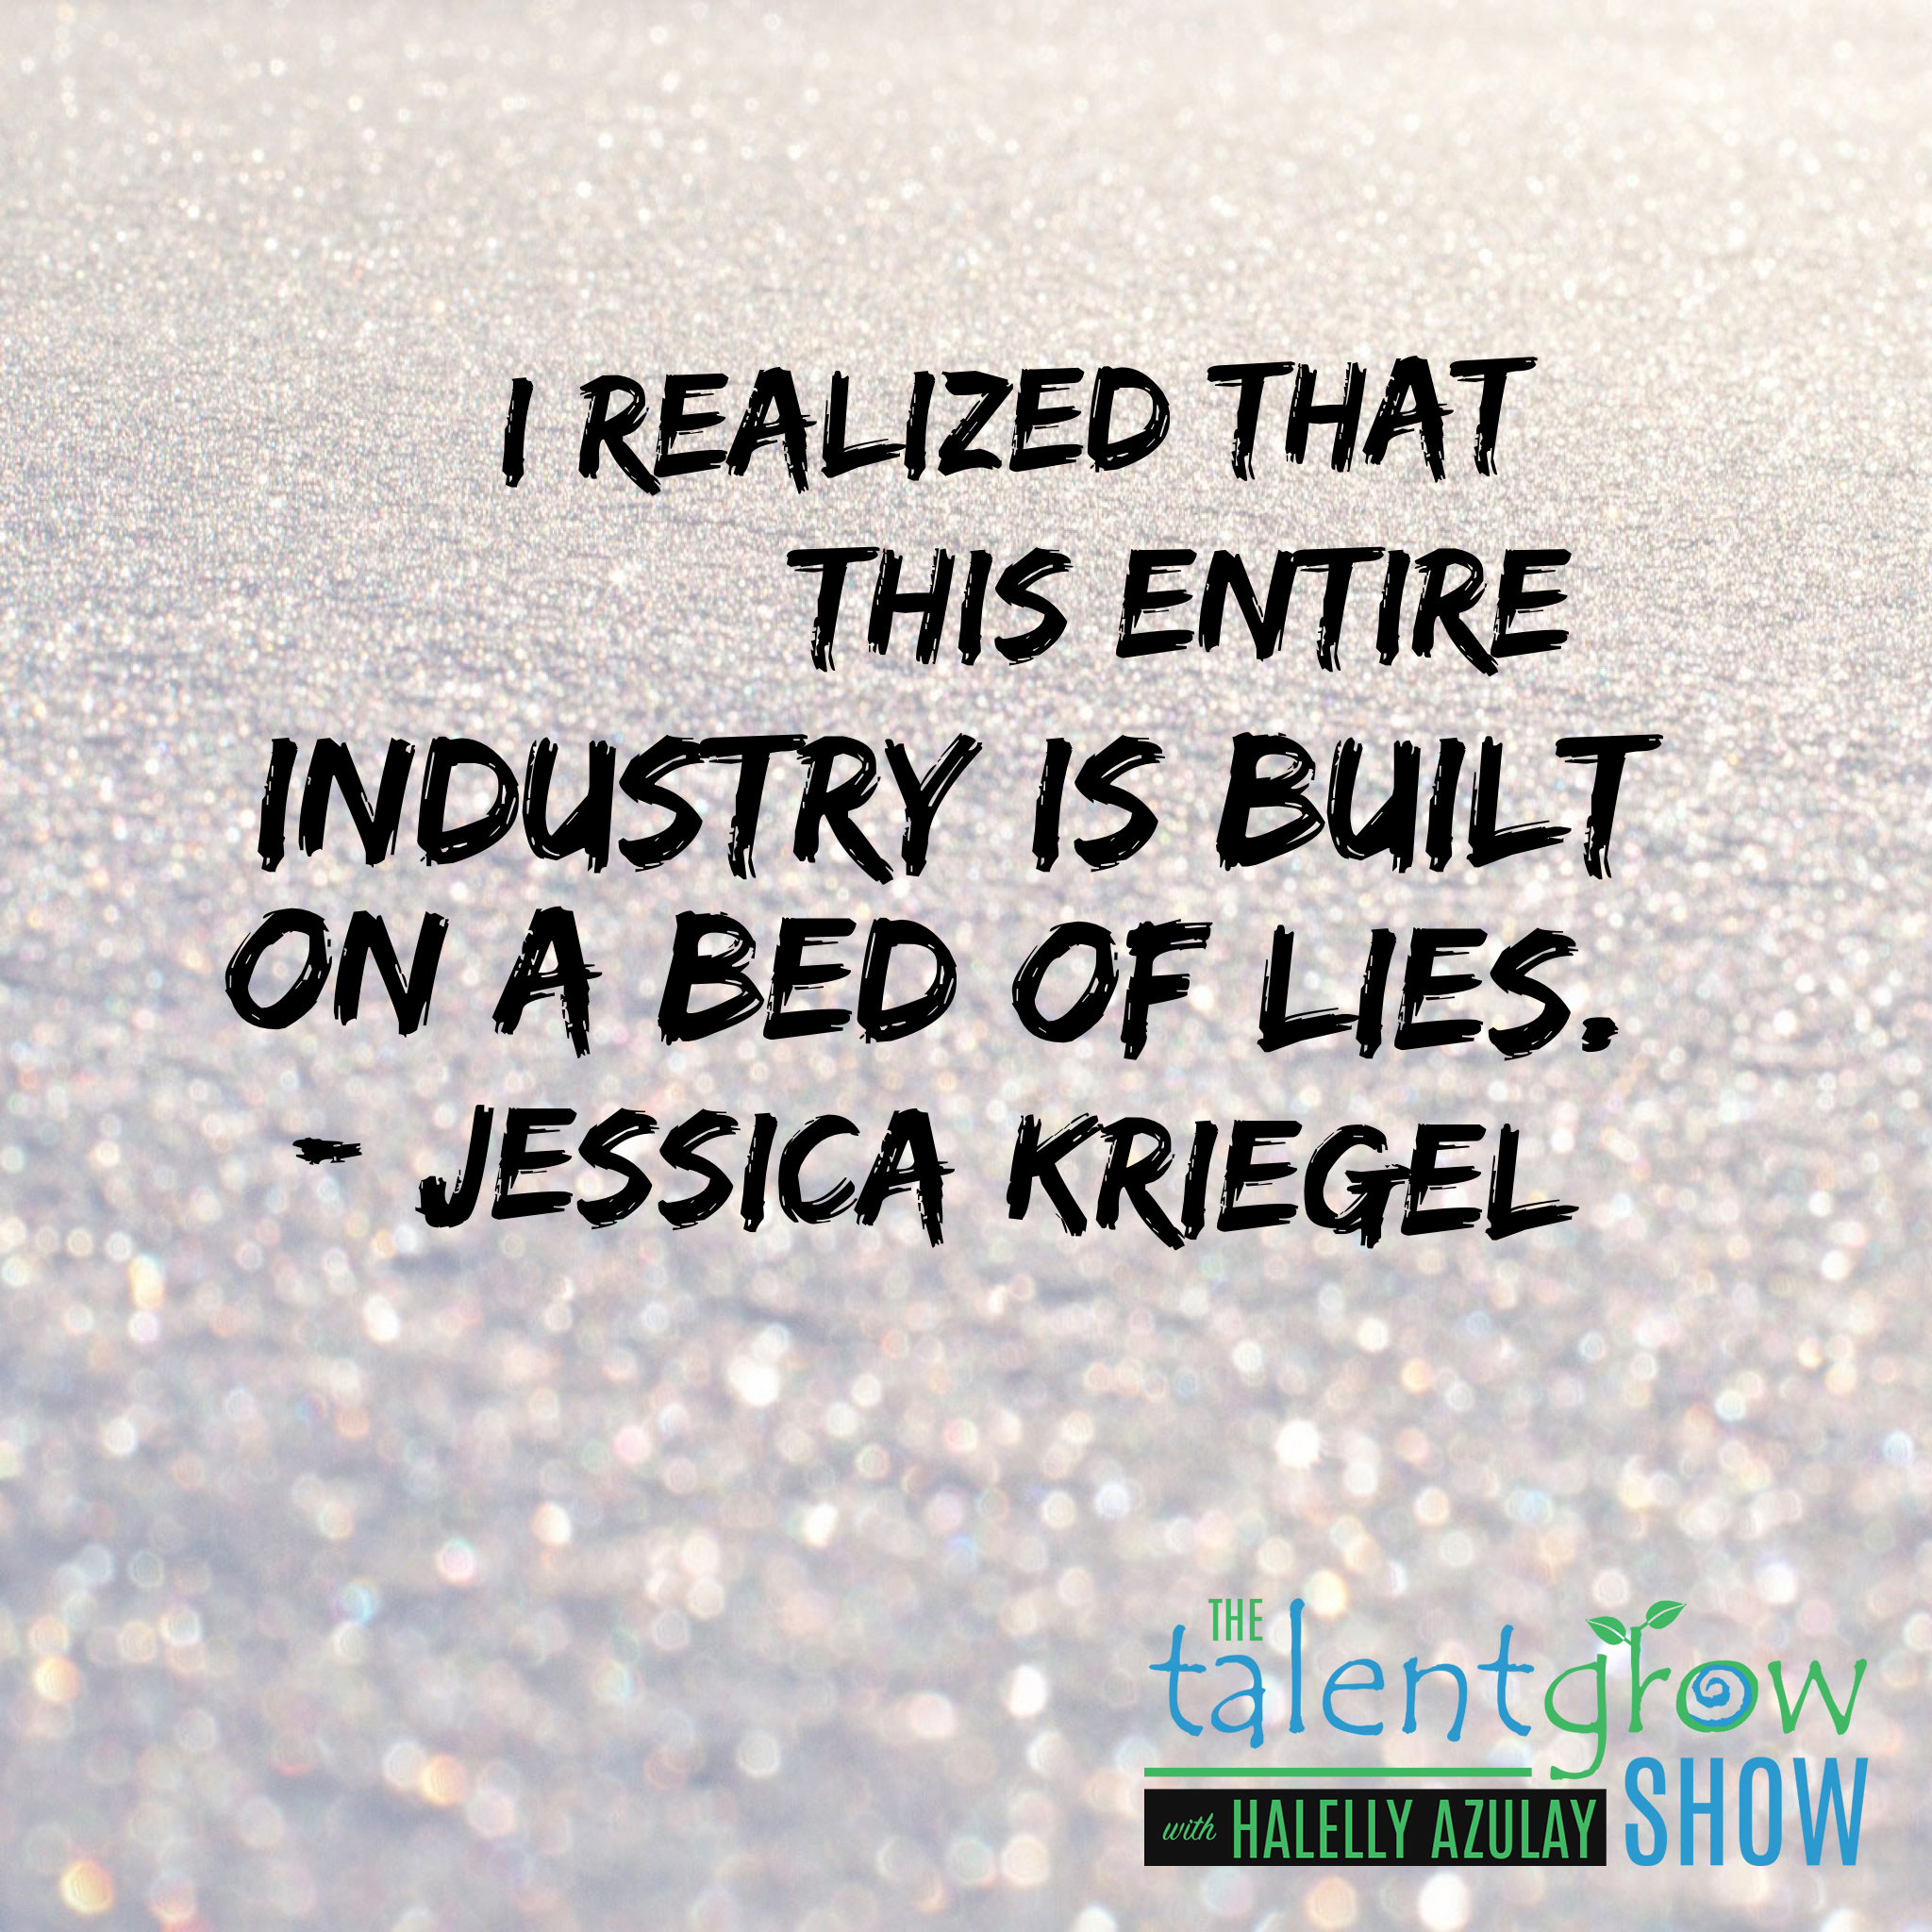 Generational advice from Jessica Kriegel on the TalentGrow Show podcast with Halelly Azulay